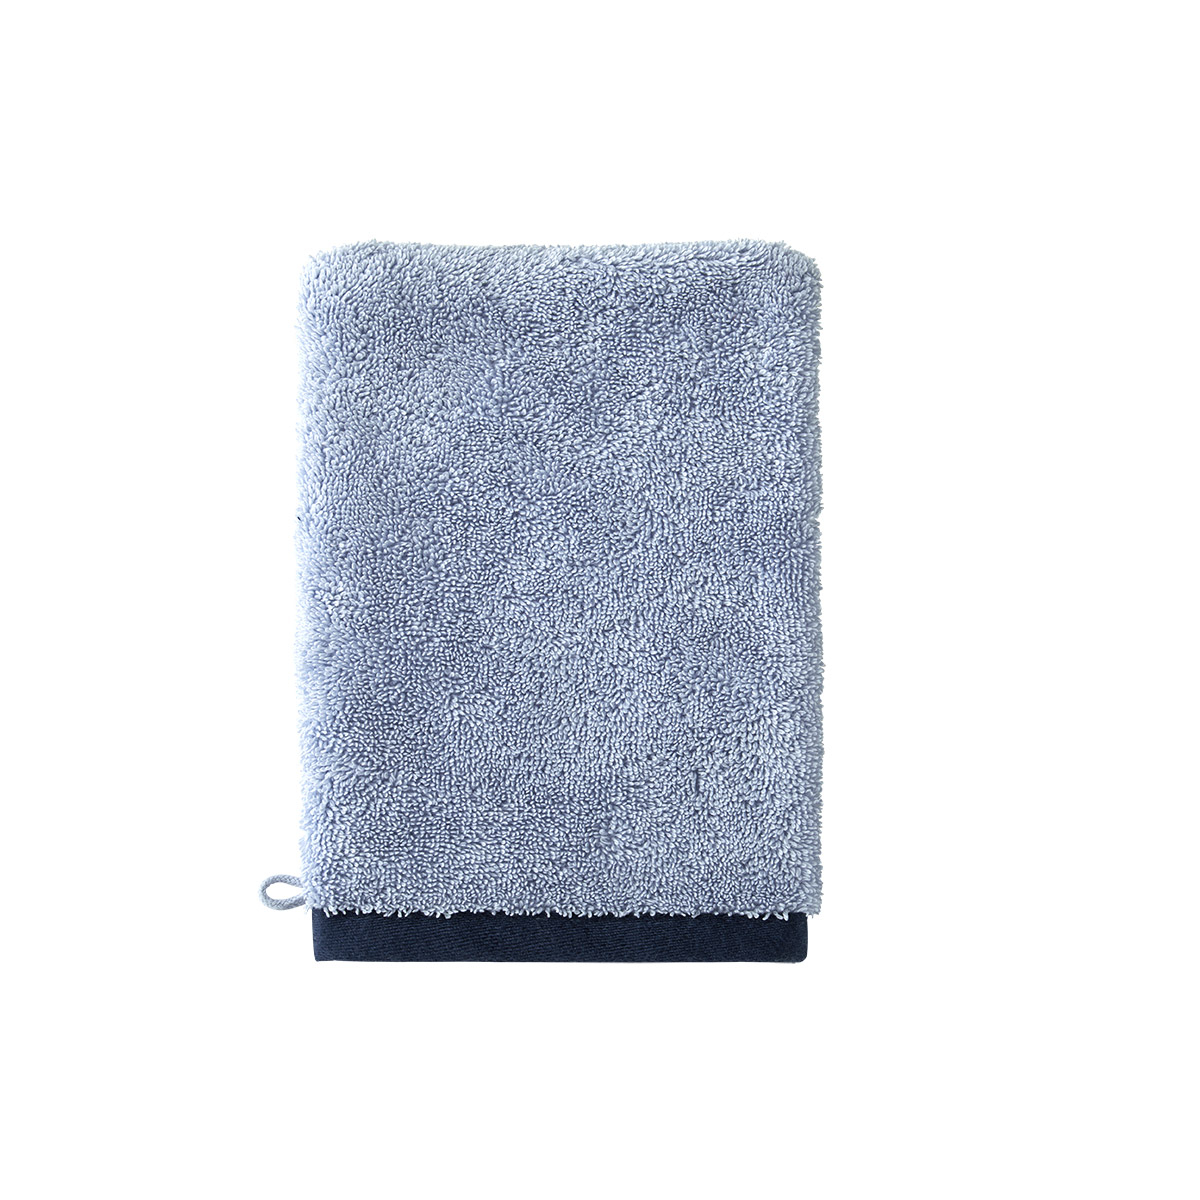 Boss home - gant de toilette coton peigné 550 g/m² multic...